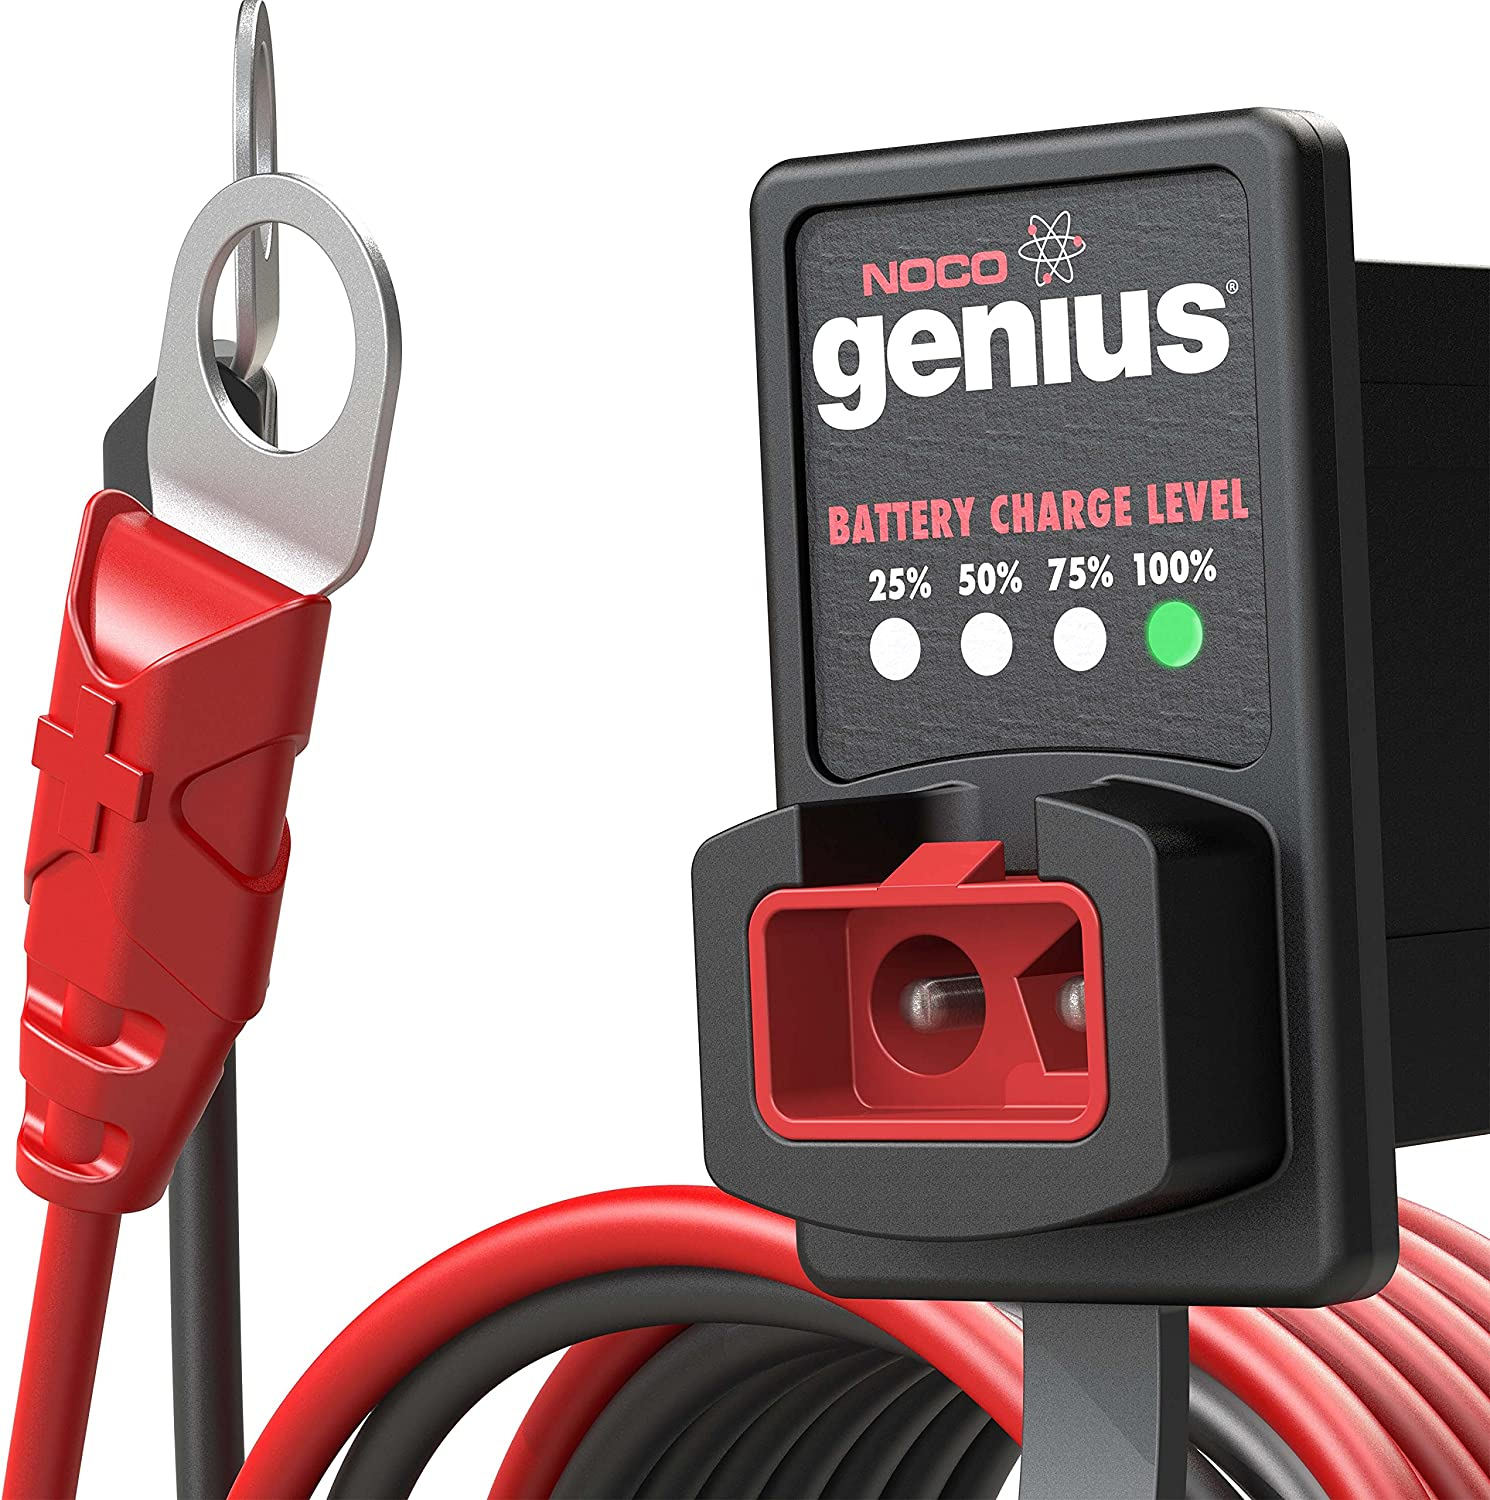 NOCO GC009 X-Connect SAE Adapter Accessory For NOCO Genius Smart Battery Chargers